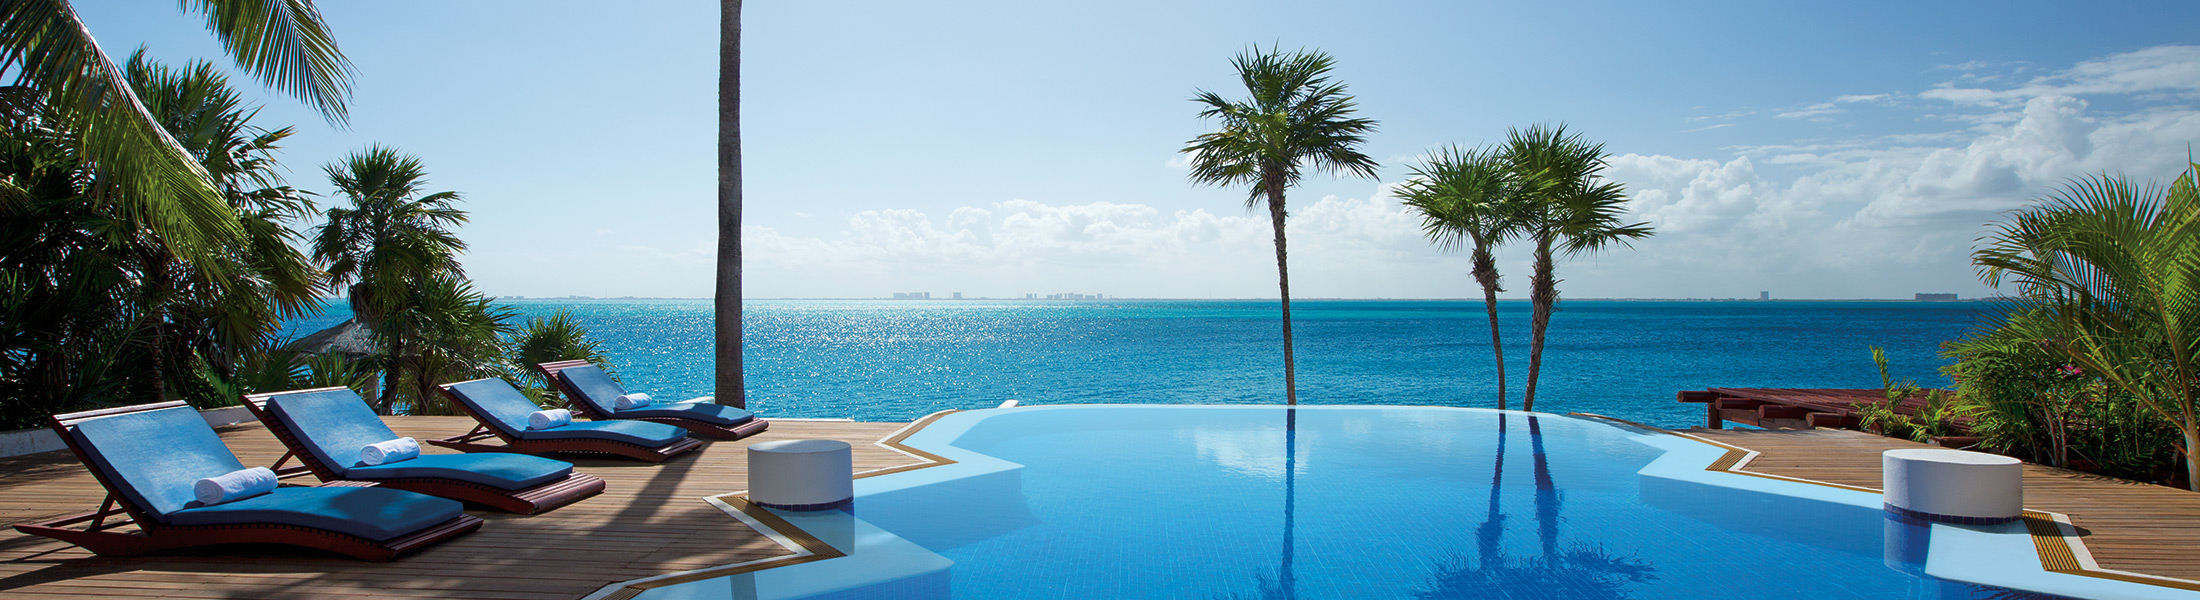 Infinity pool at Zoetry Villa Rolandi Isla Mujeres